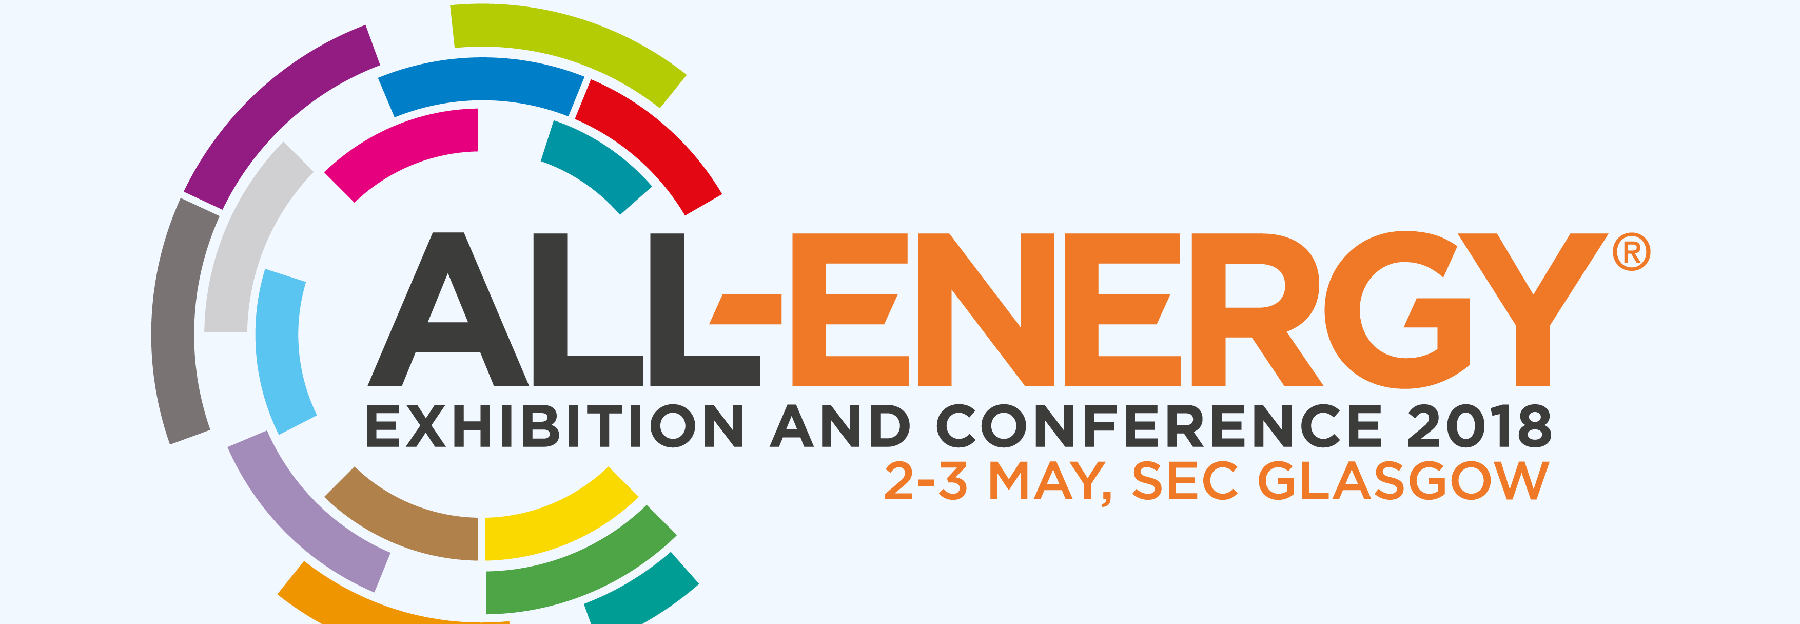 All Energy Exhibition and Conference in Glasgow, May 2nd & 3rd 2018